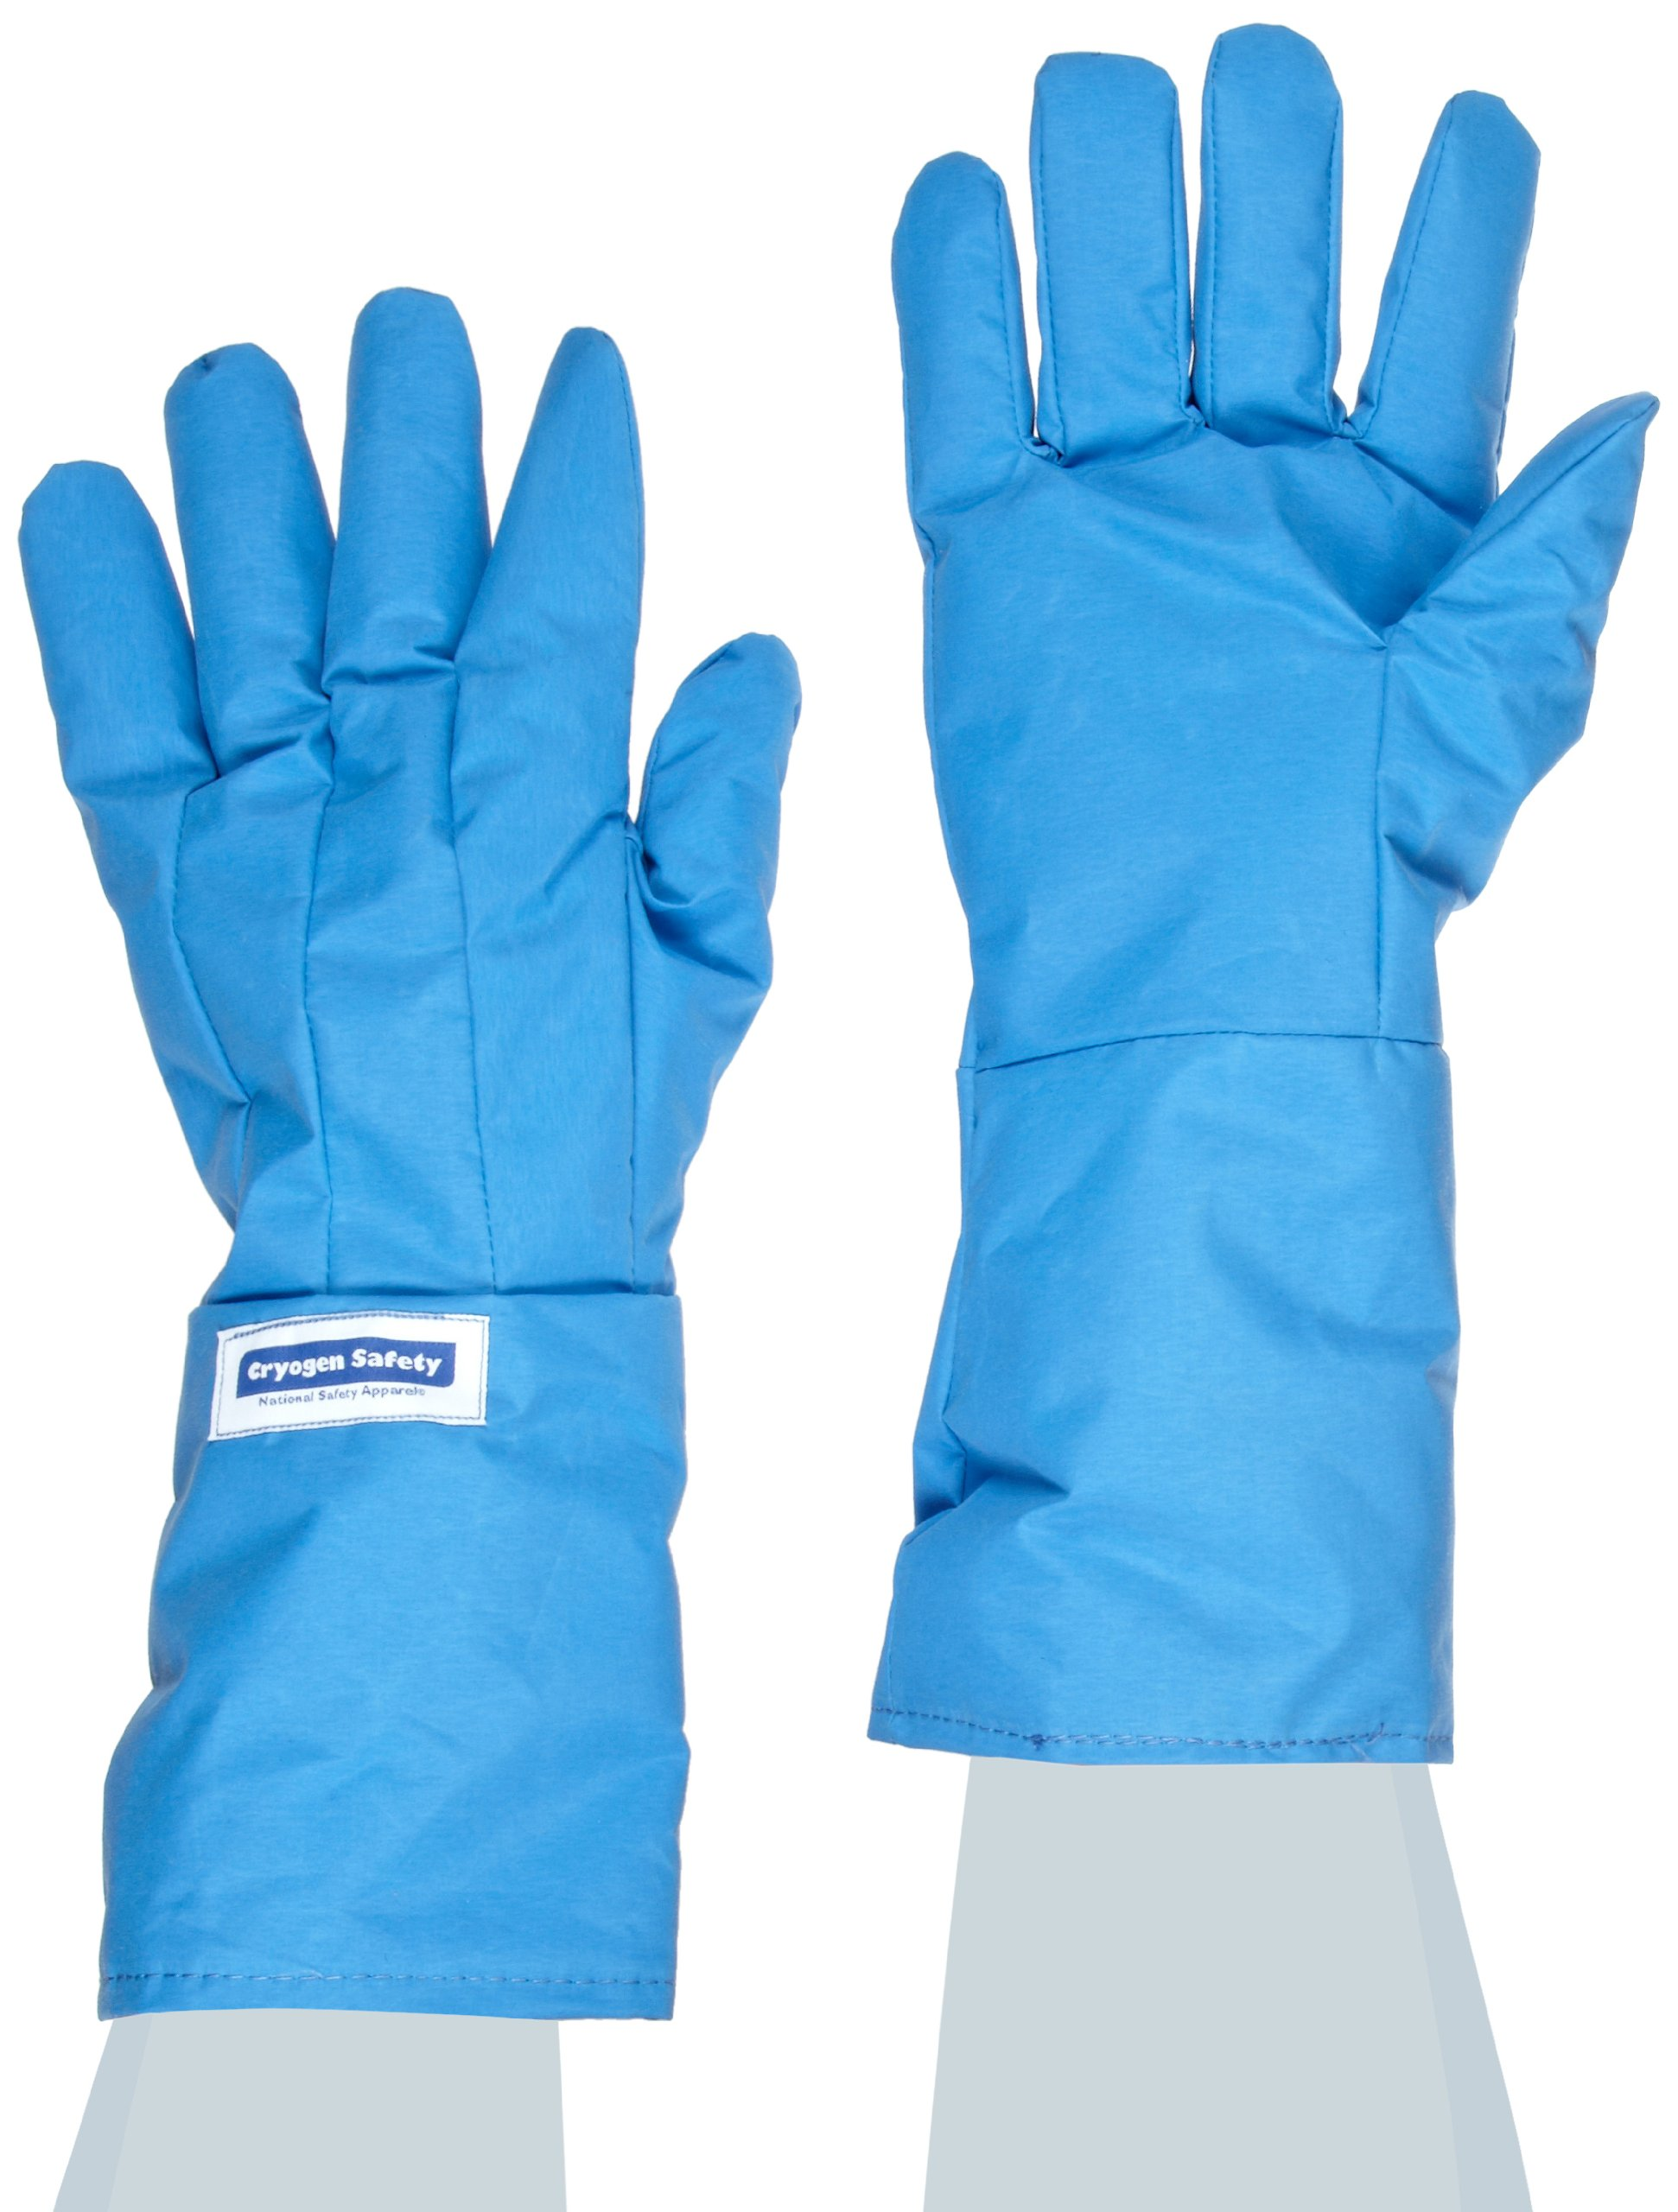 National Safety Apparel G99CRBEPXLMA Nylon Taslan and PTFE Mid-Arm Waterproof Safety Glove, Cryogenic, 14'' - 15'' Length, X-Large, Blue